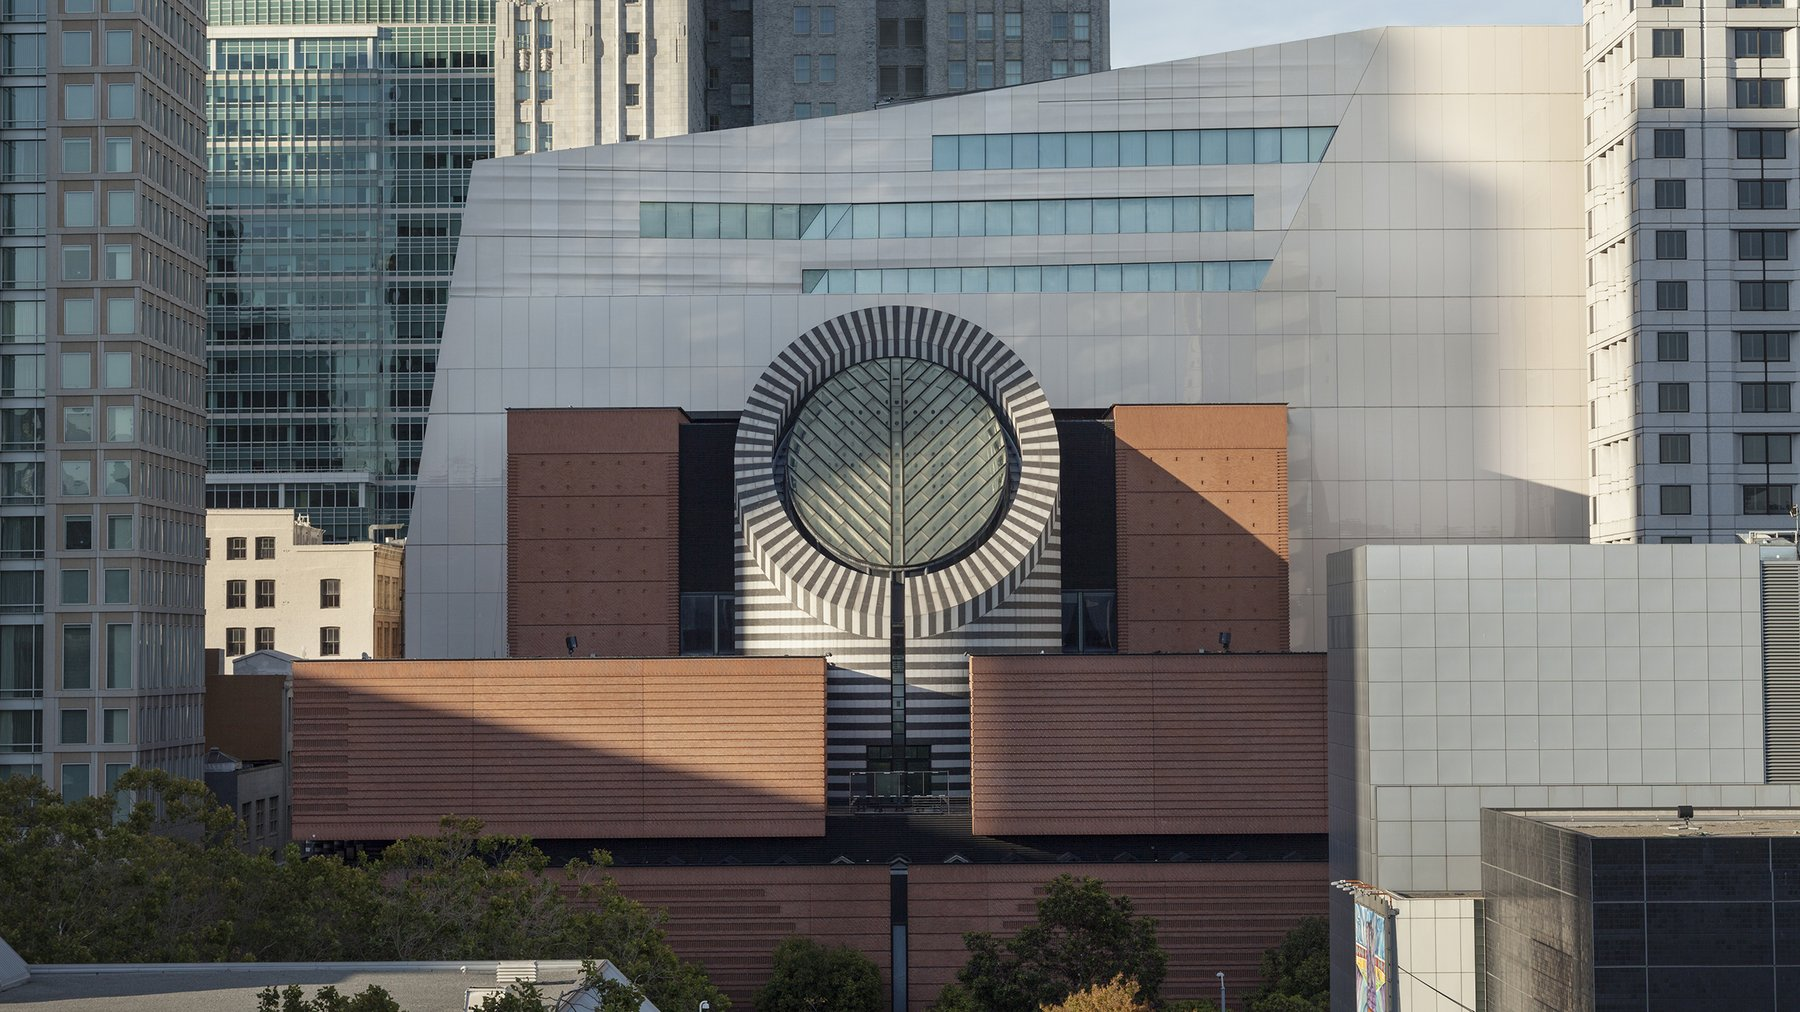 The front of the SFMOMA building